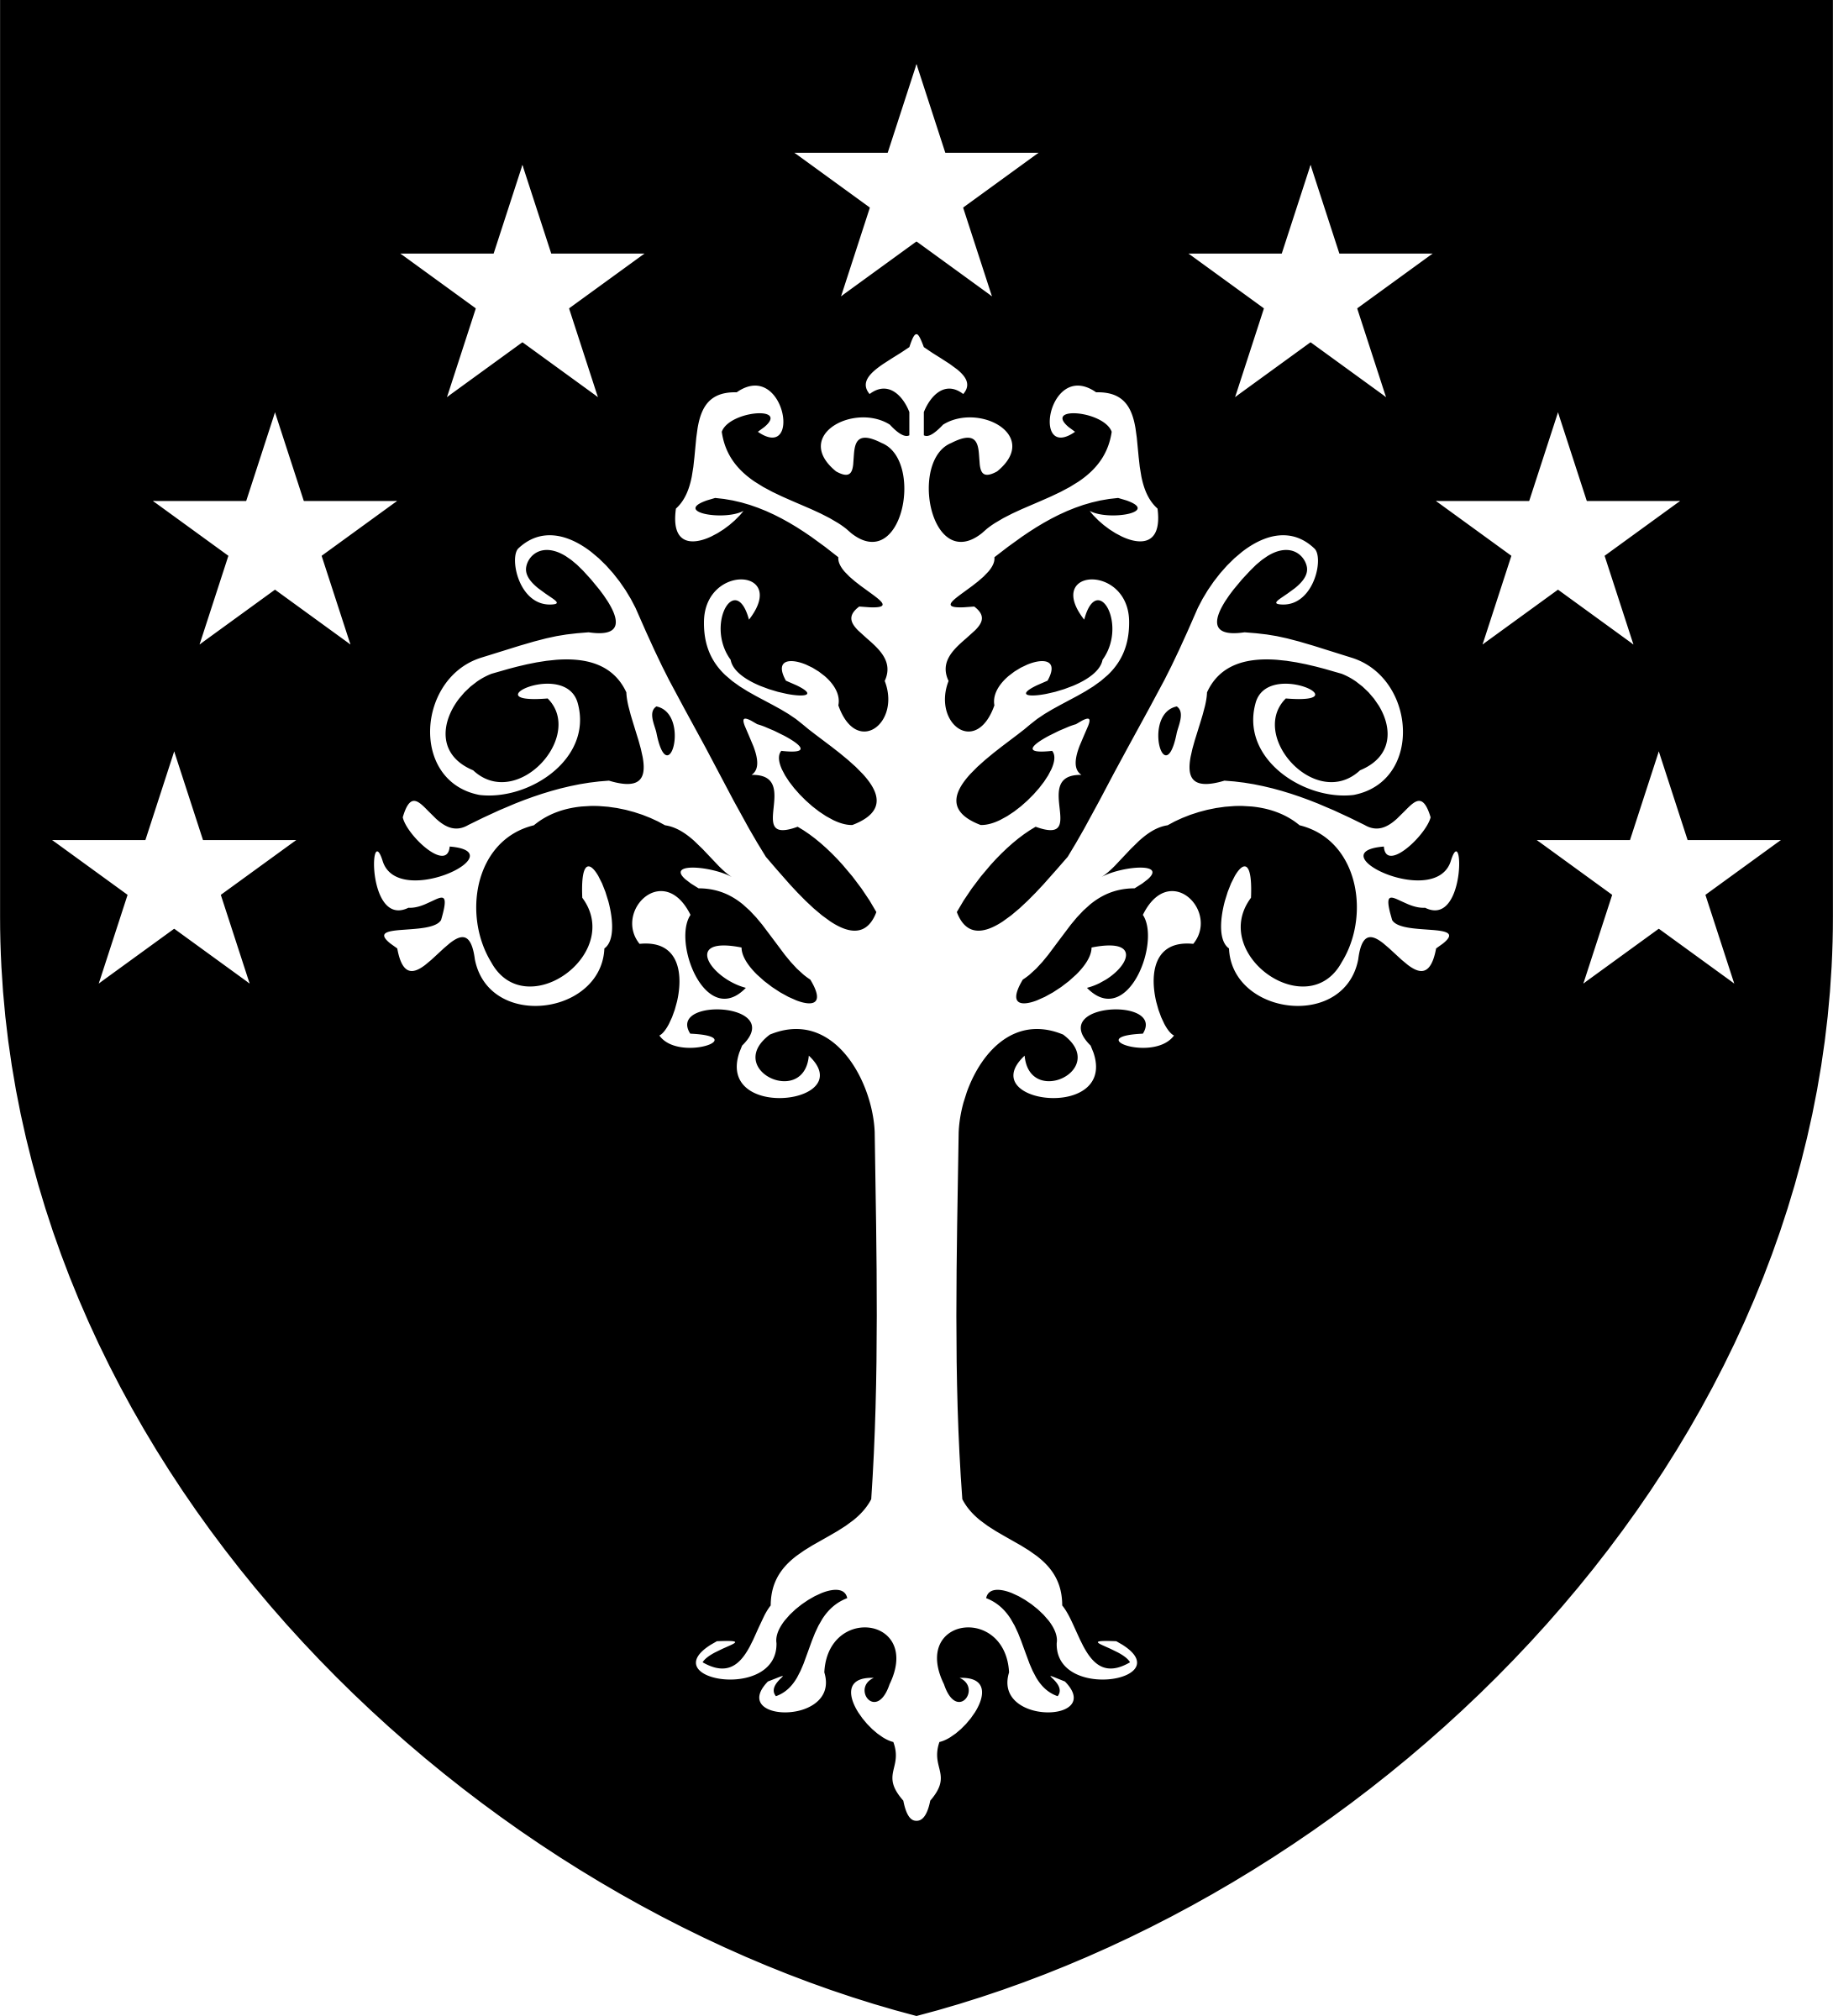 Escudo Gondor by Magirly